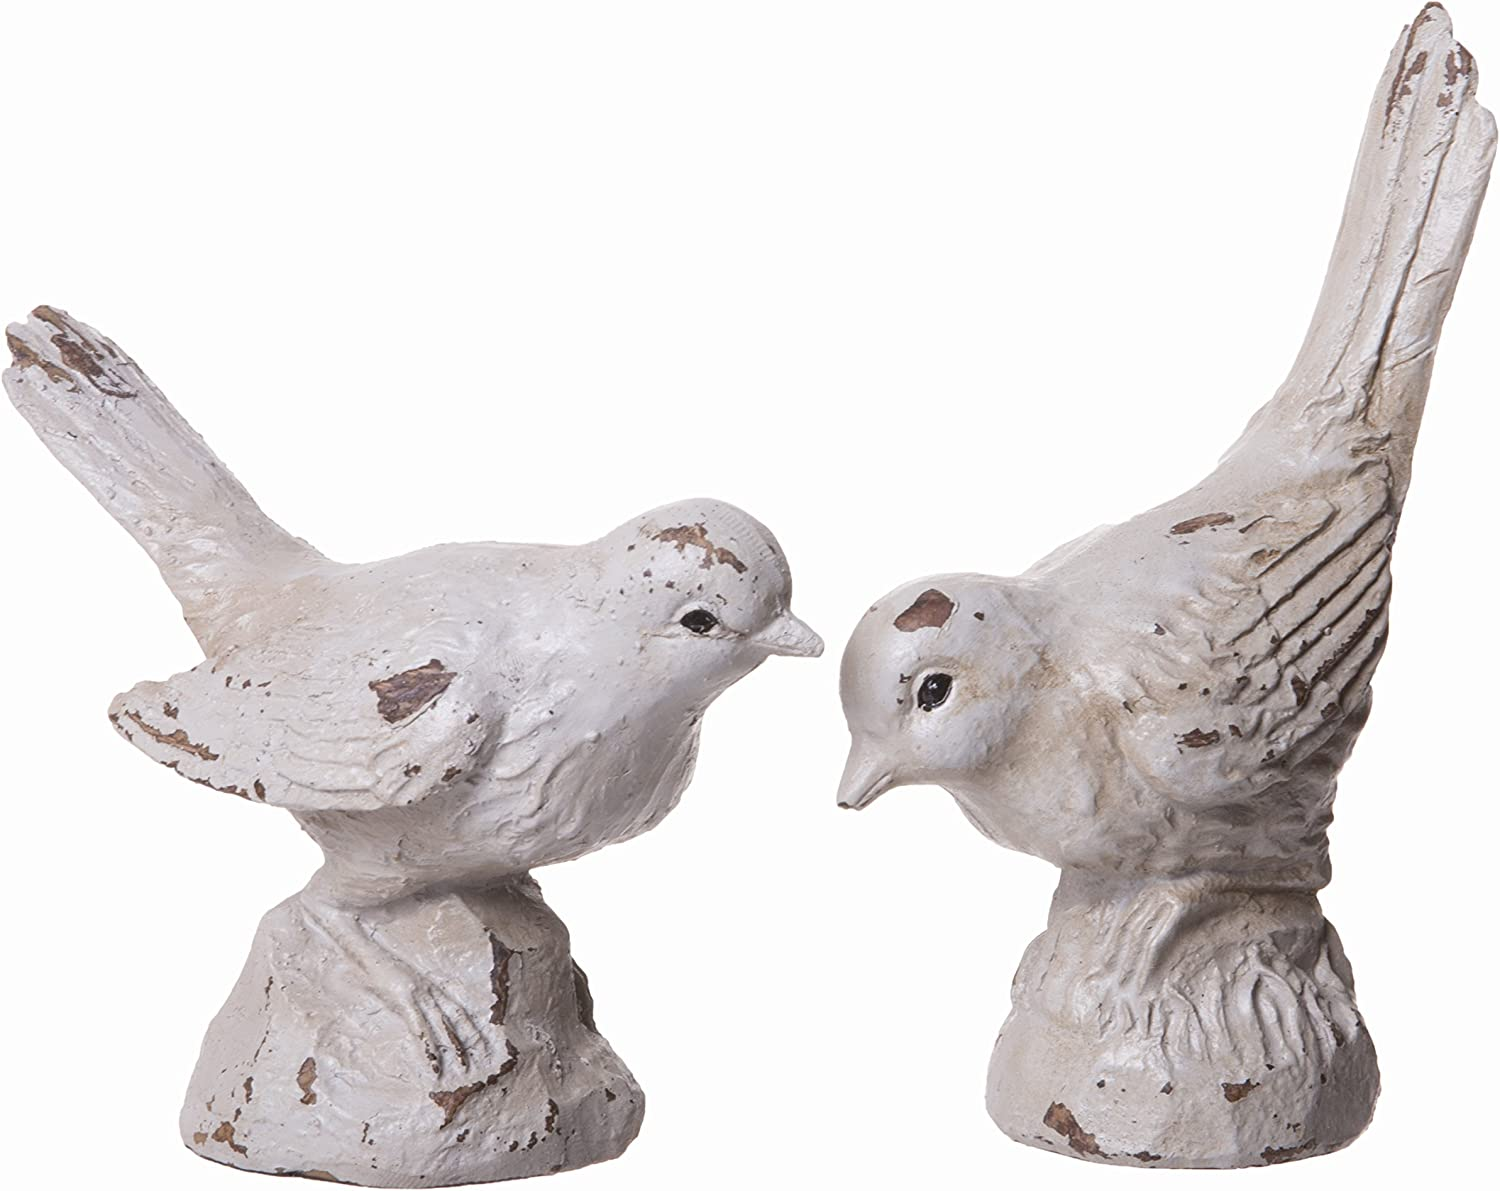 Red Co. Little Aged Bird Sculptures, Garden Inspired Home Decorations, Set of 2 Off White Figurines, Small, 3-inch